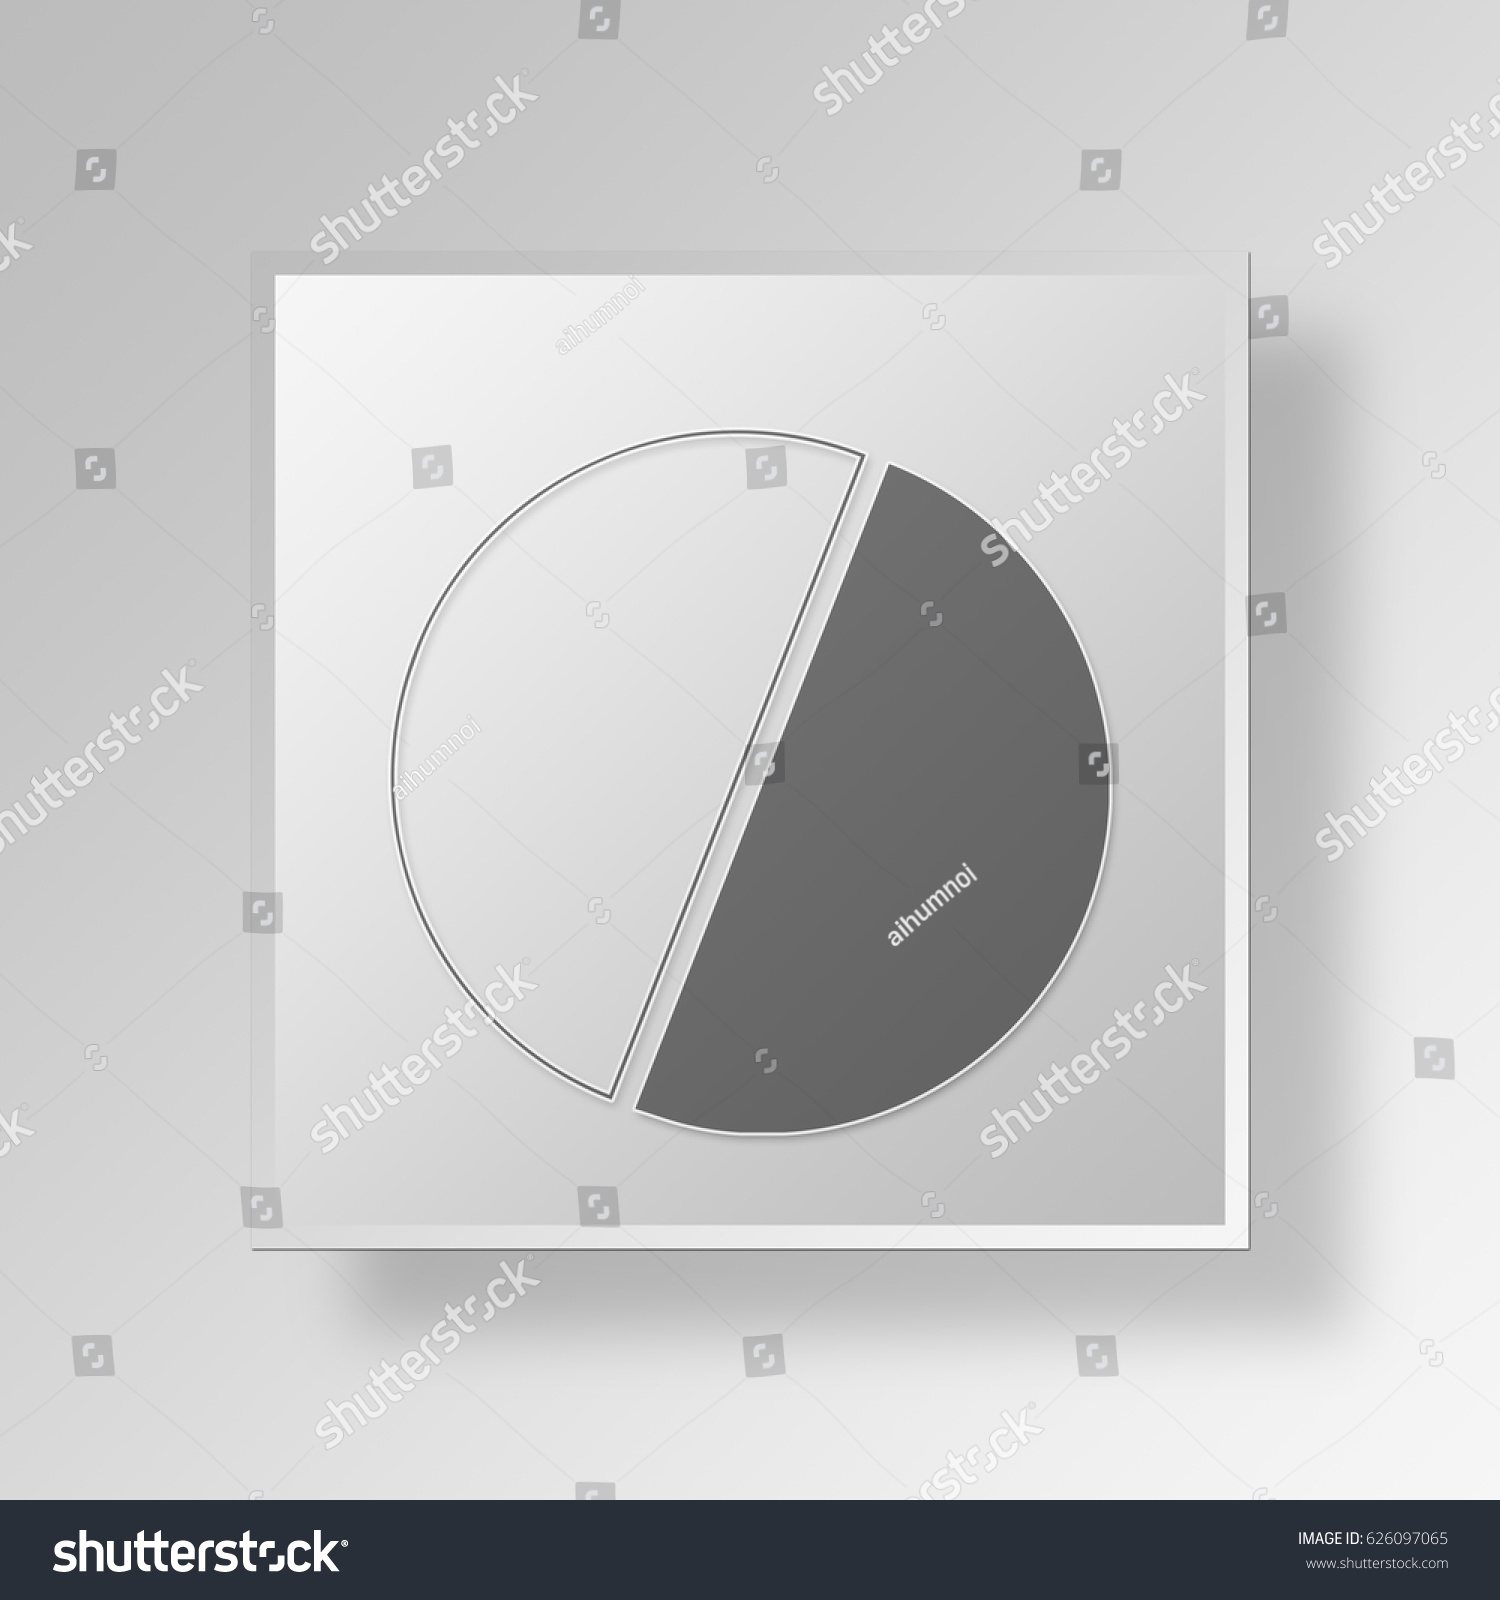 Square pie chart image collections free any chart examples square pie chart choice image free any chart examples 3d symbol gray square pie chart stock nvjuhfo Image collections